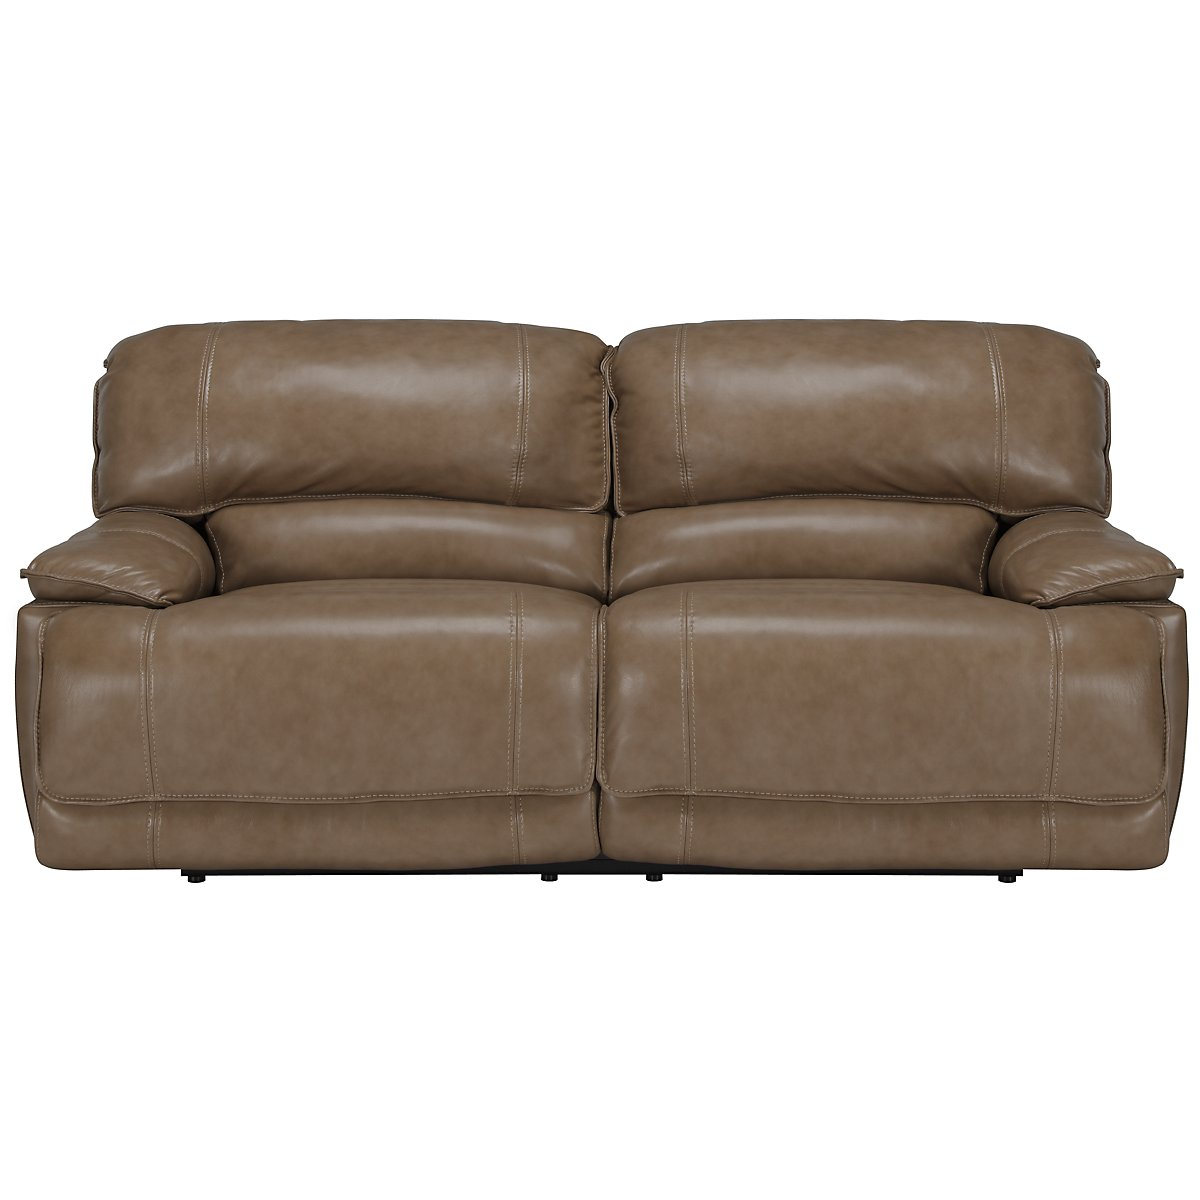 Benson Dark Taupe Leather & Vinyl Lthr/vinyl Power Reclining Sofa